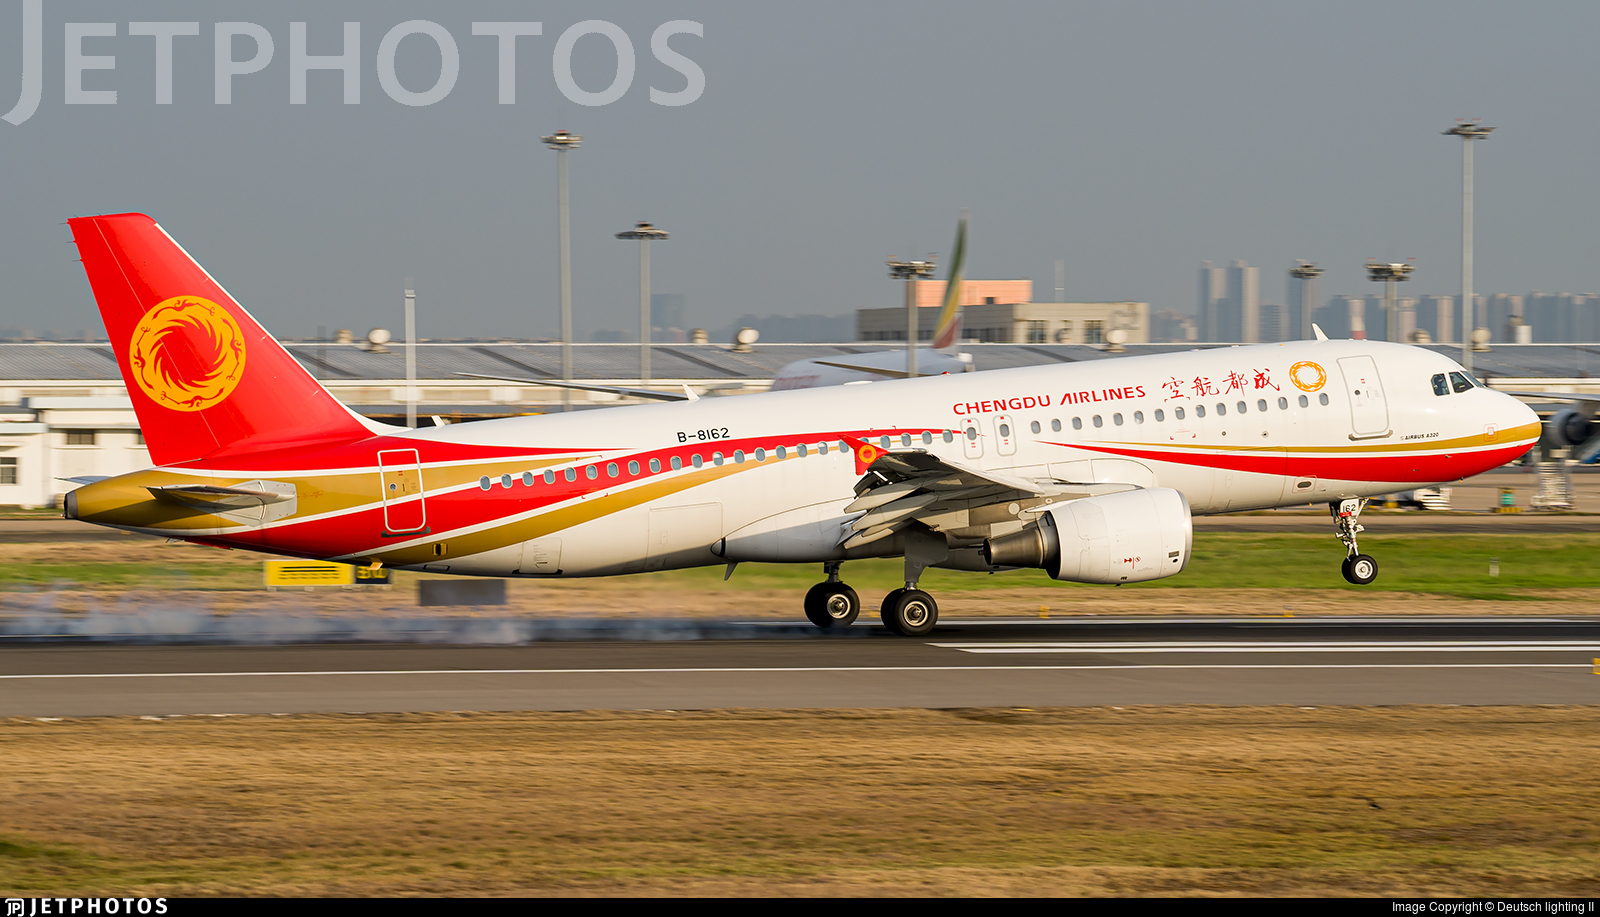 B-8162 - Airbus A320-214 - Chengdu Airlines